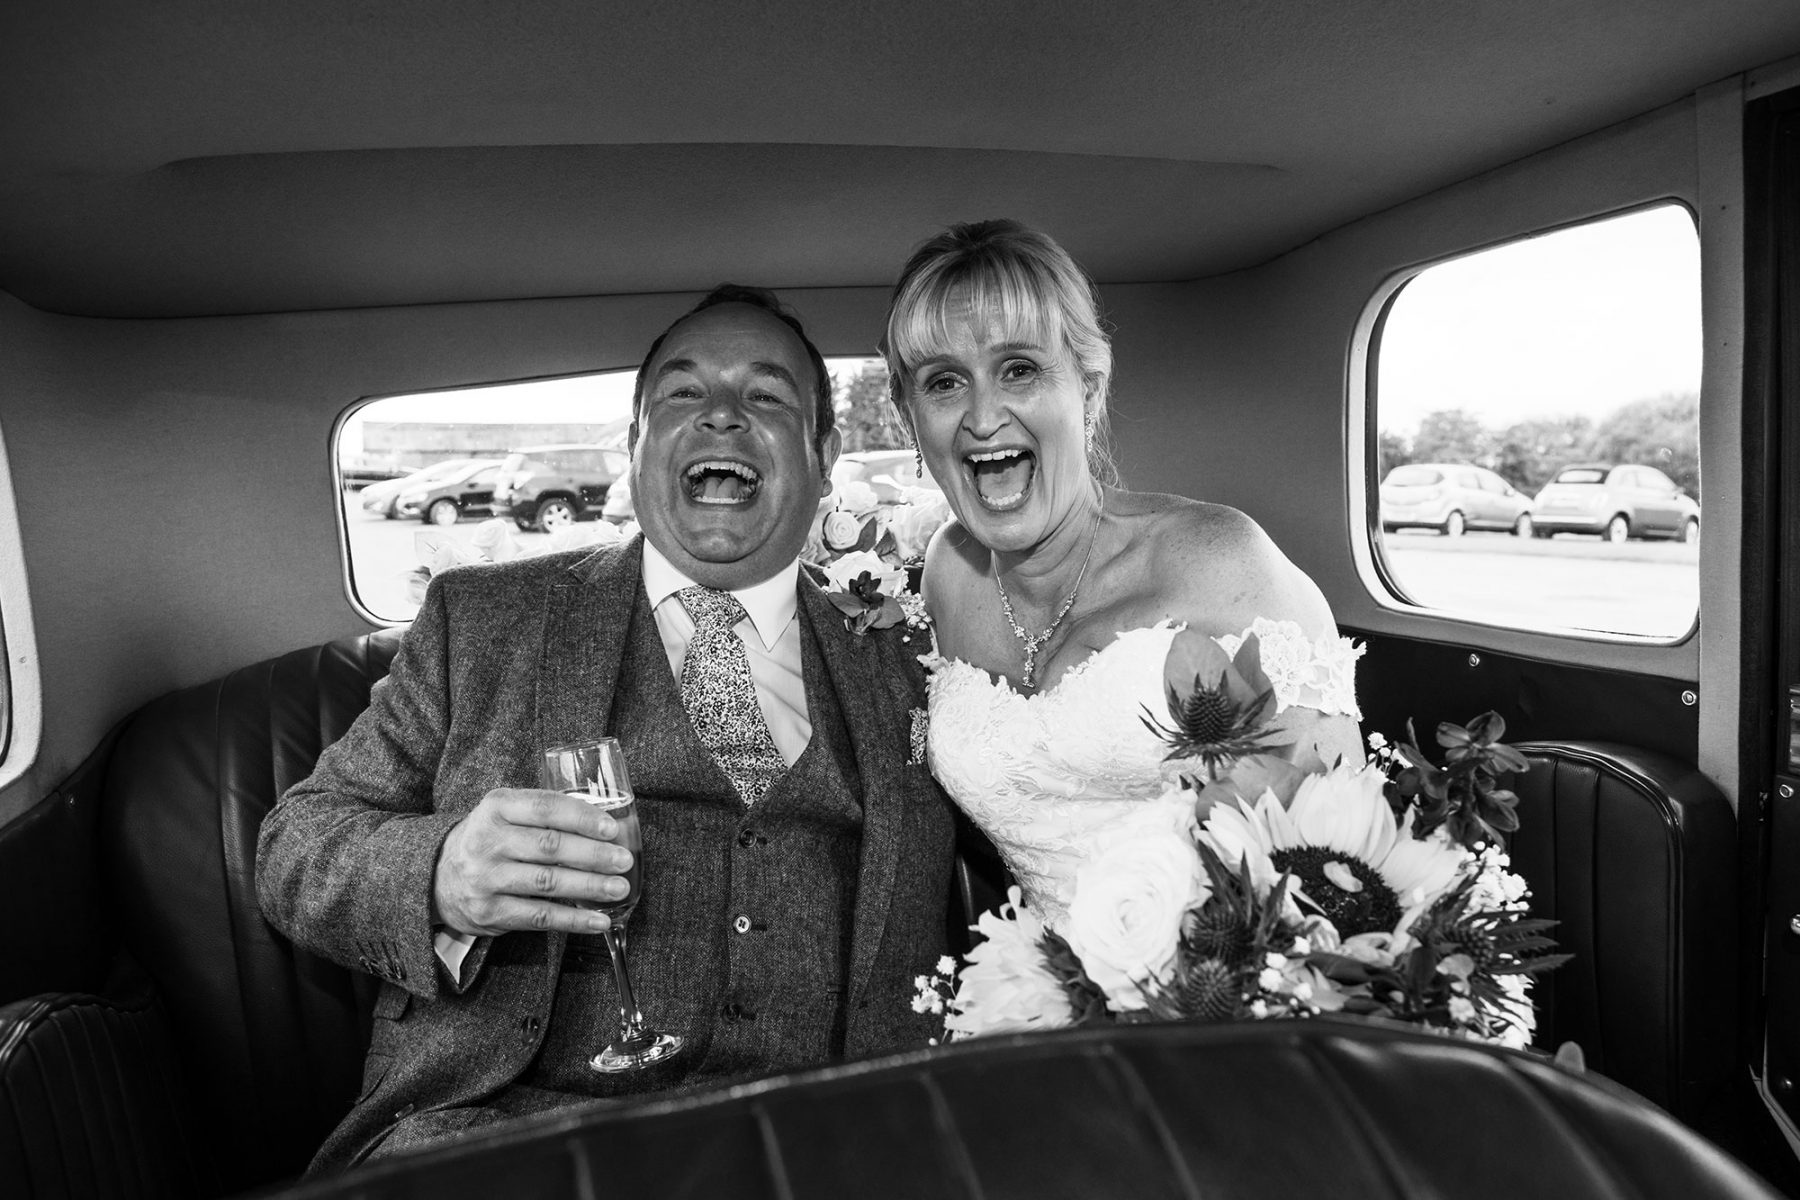 The bride and groom react to the car horn going off